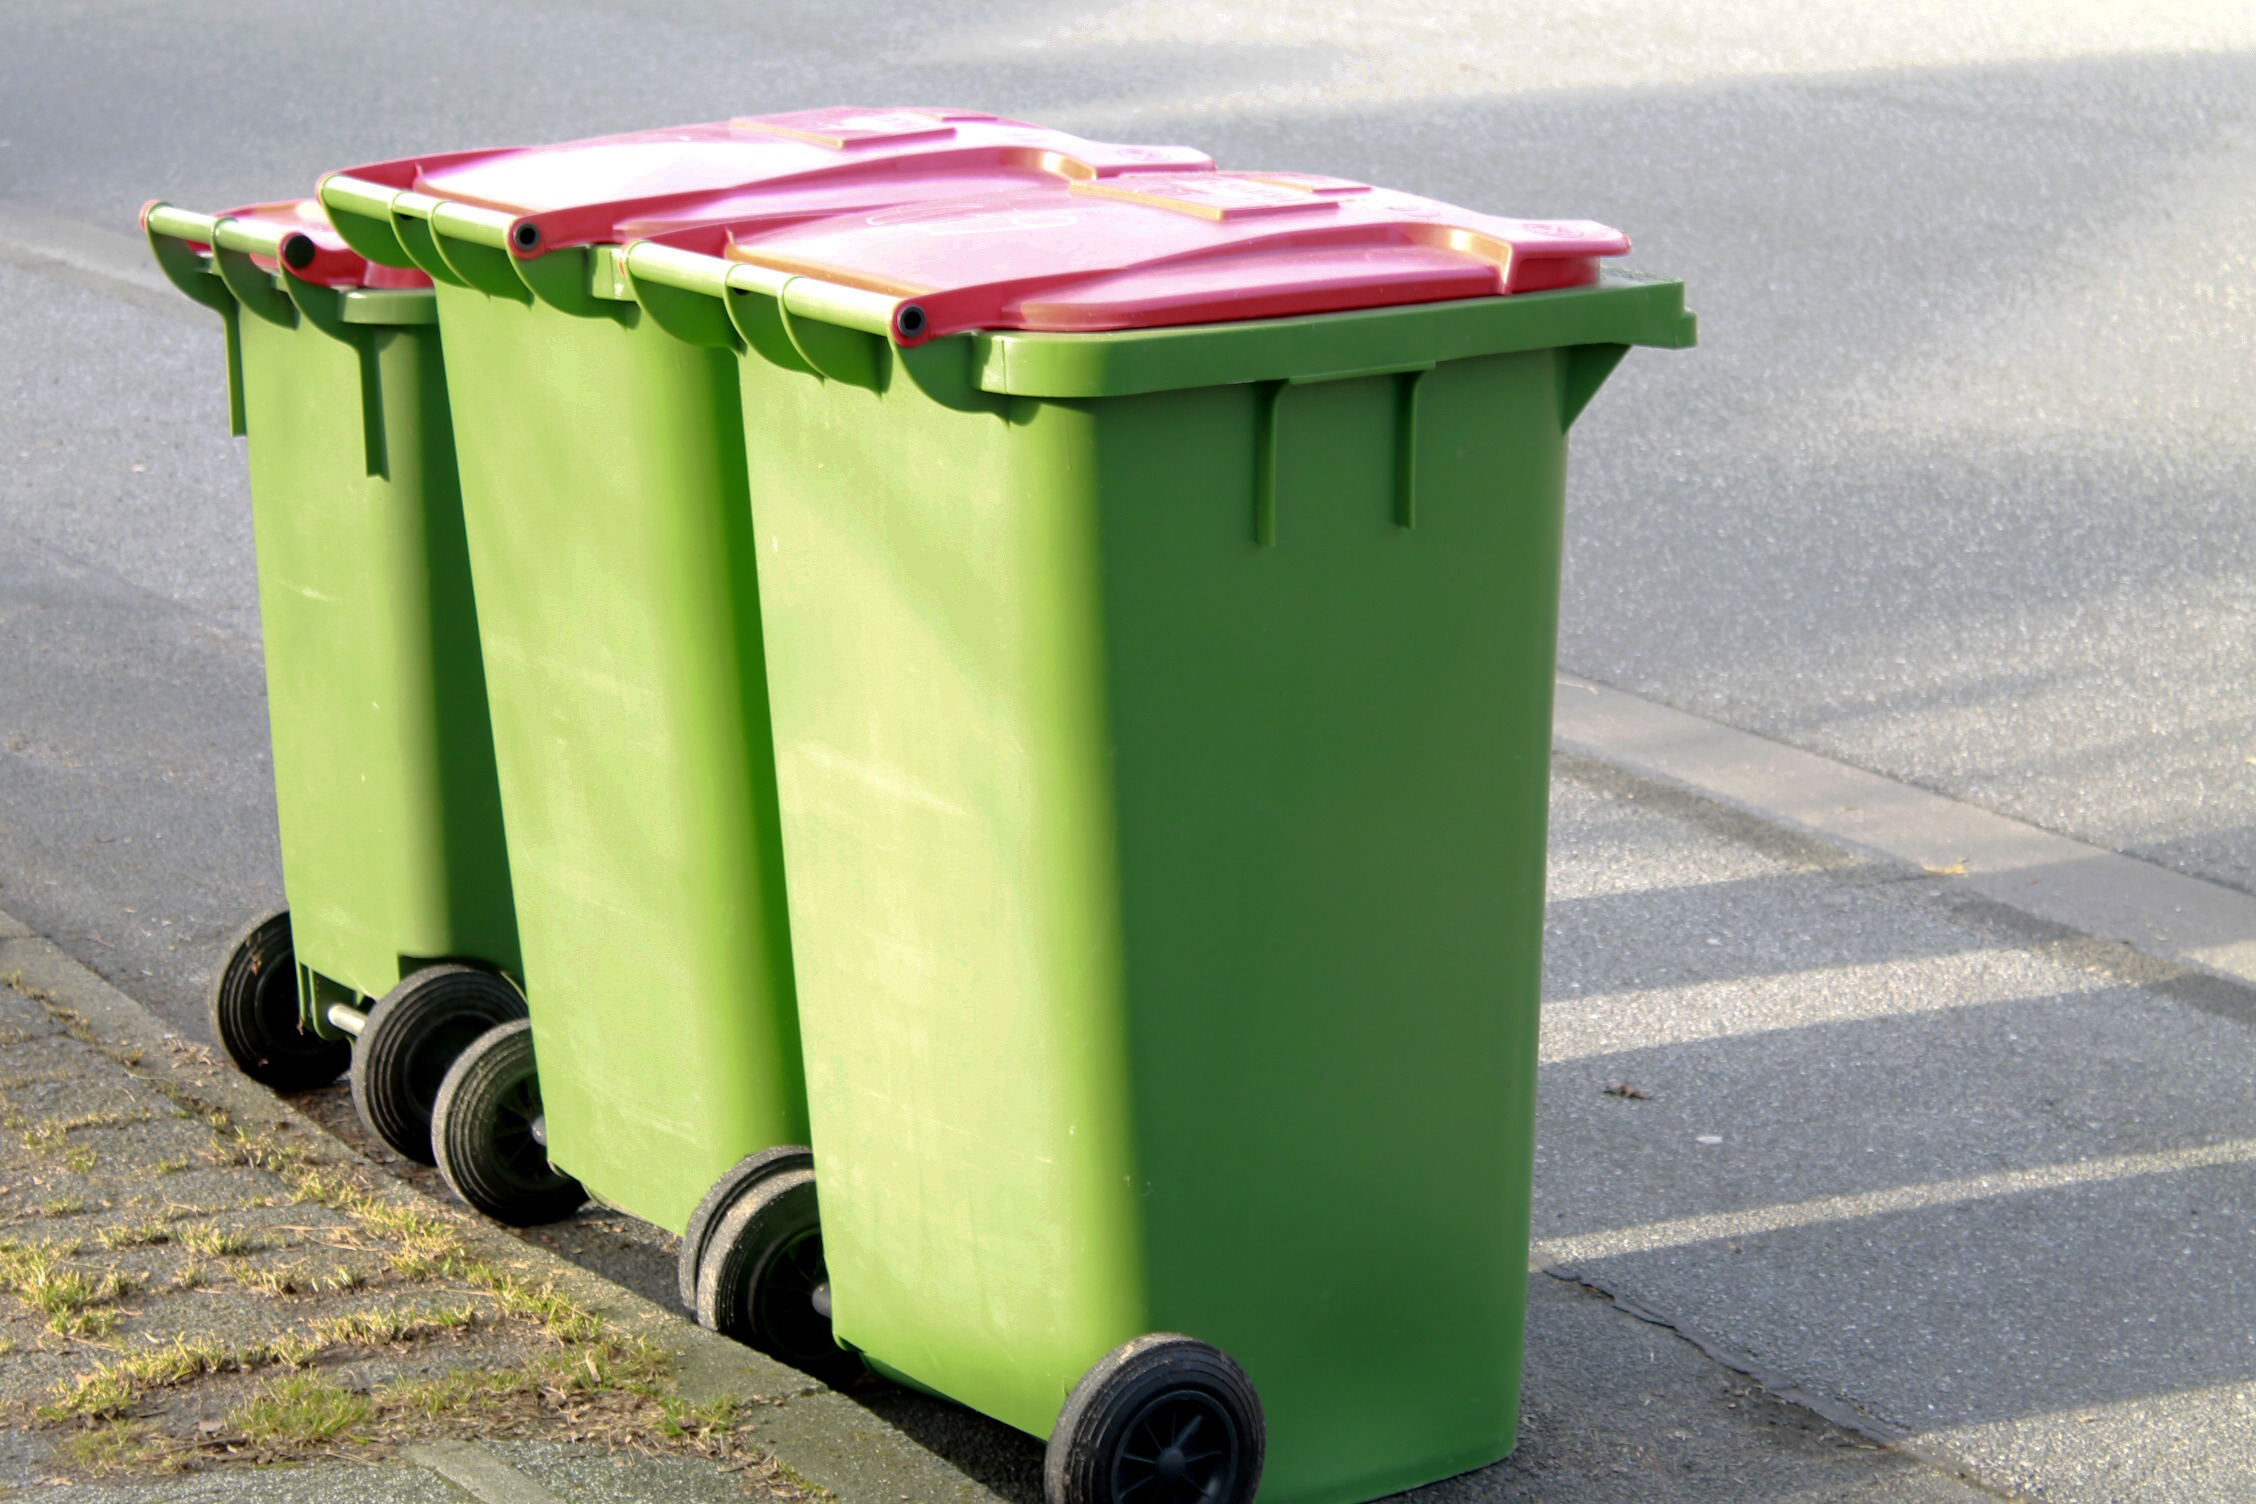 3 Green Bins with Pink Lids Lined Up on a Curb